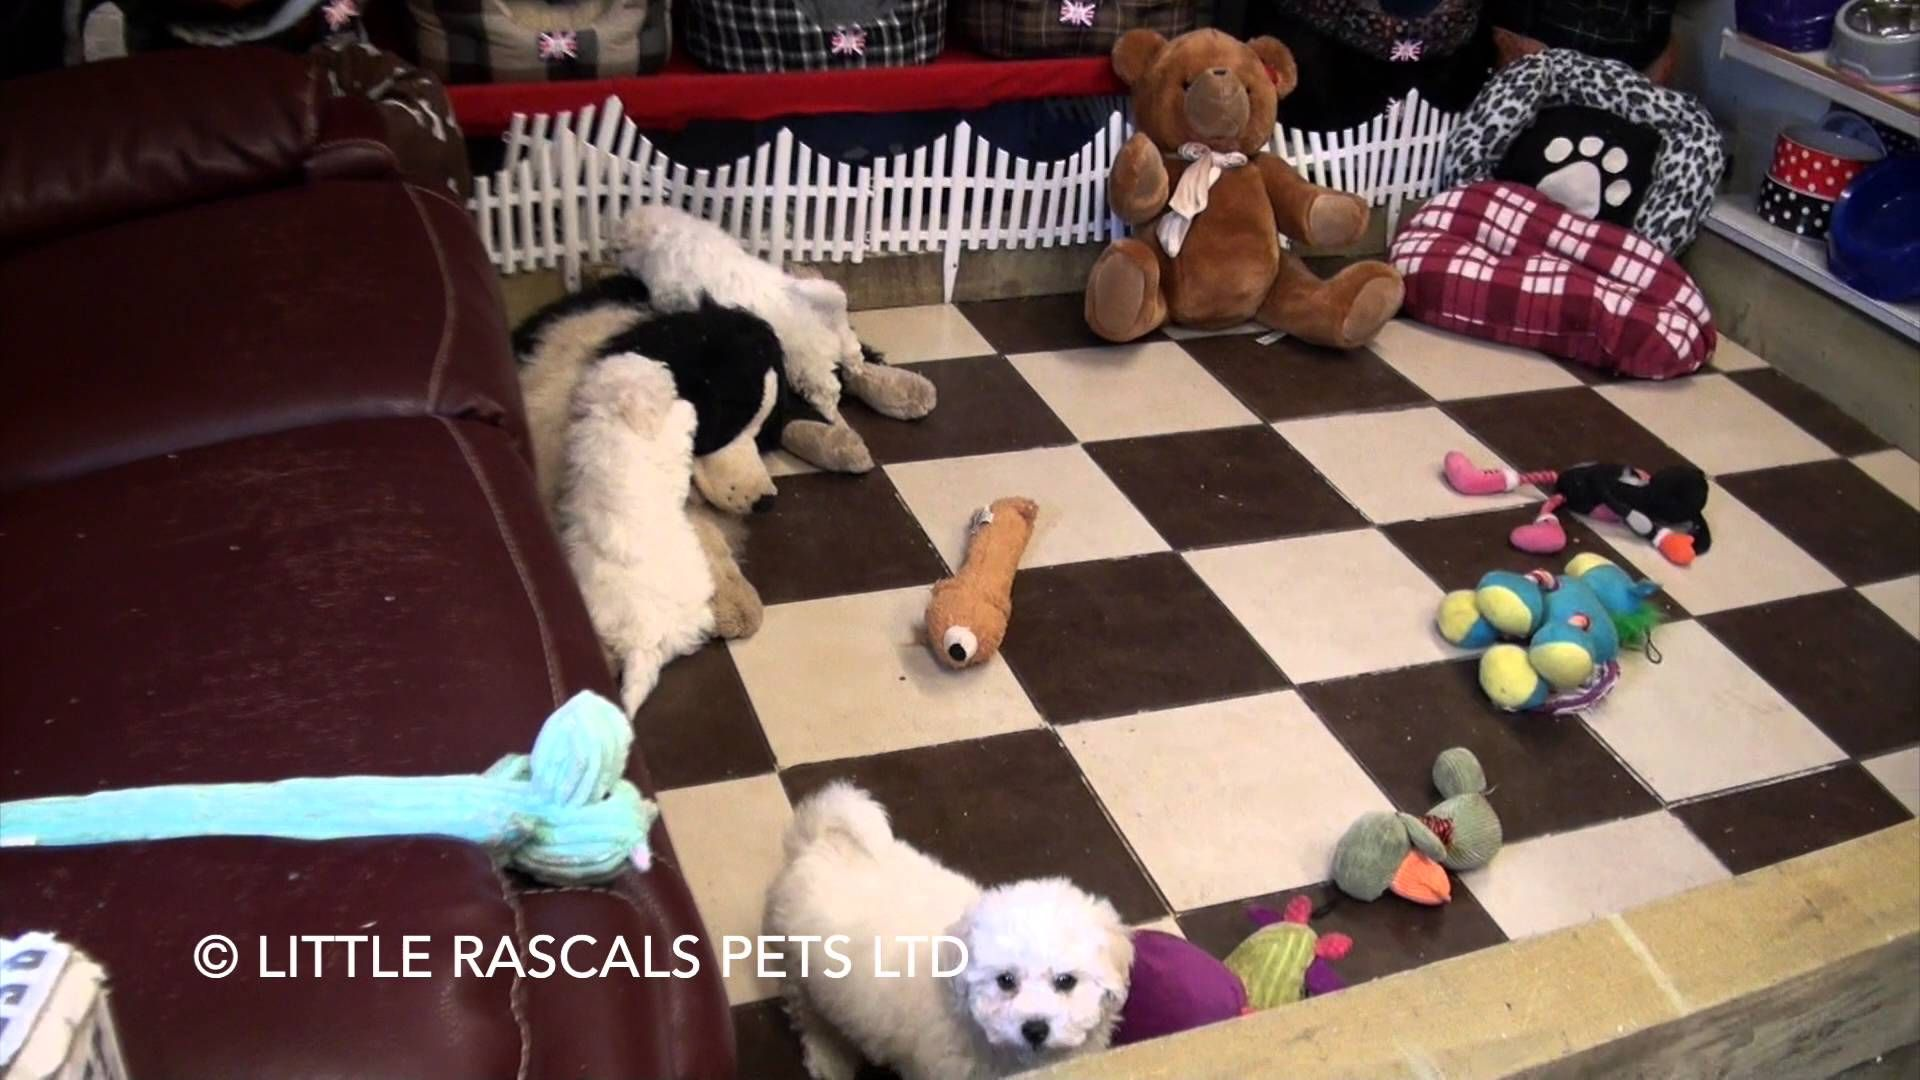 Little Rascals Uk Breeders New Litter Of Poochon Boys And Girls Puppie With Images Puppies For Sale Boy Or Girl Puppies